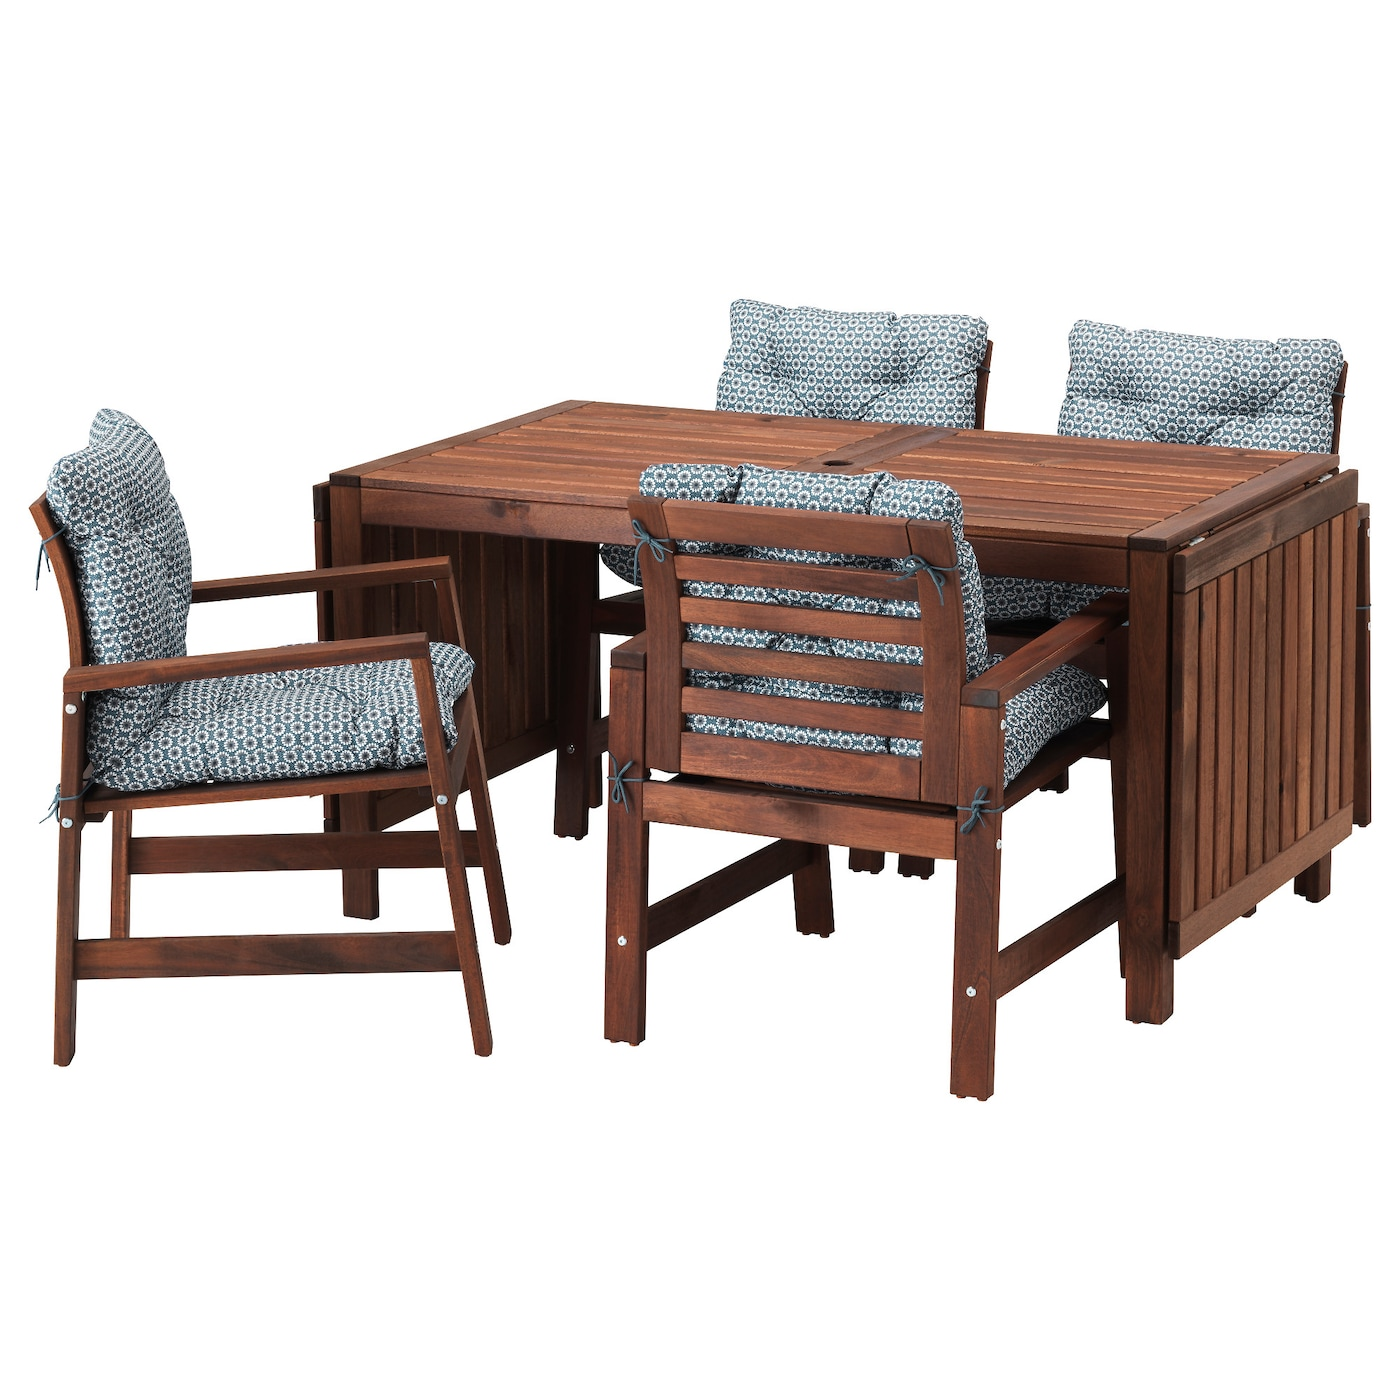 pplar table 4 chairs w armrests outdoor brown stained. Black Bedroom Furniture Sets. Home Design Ideas